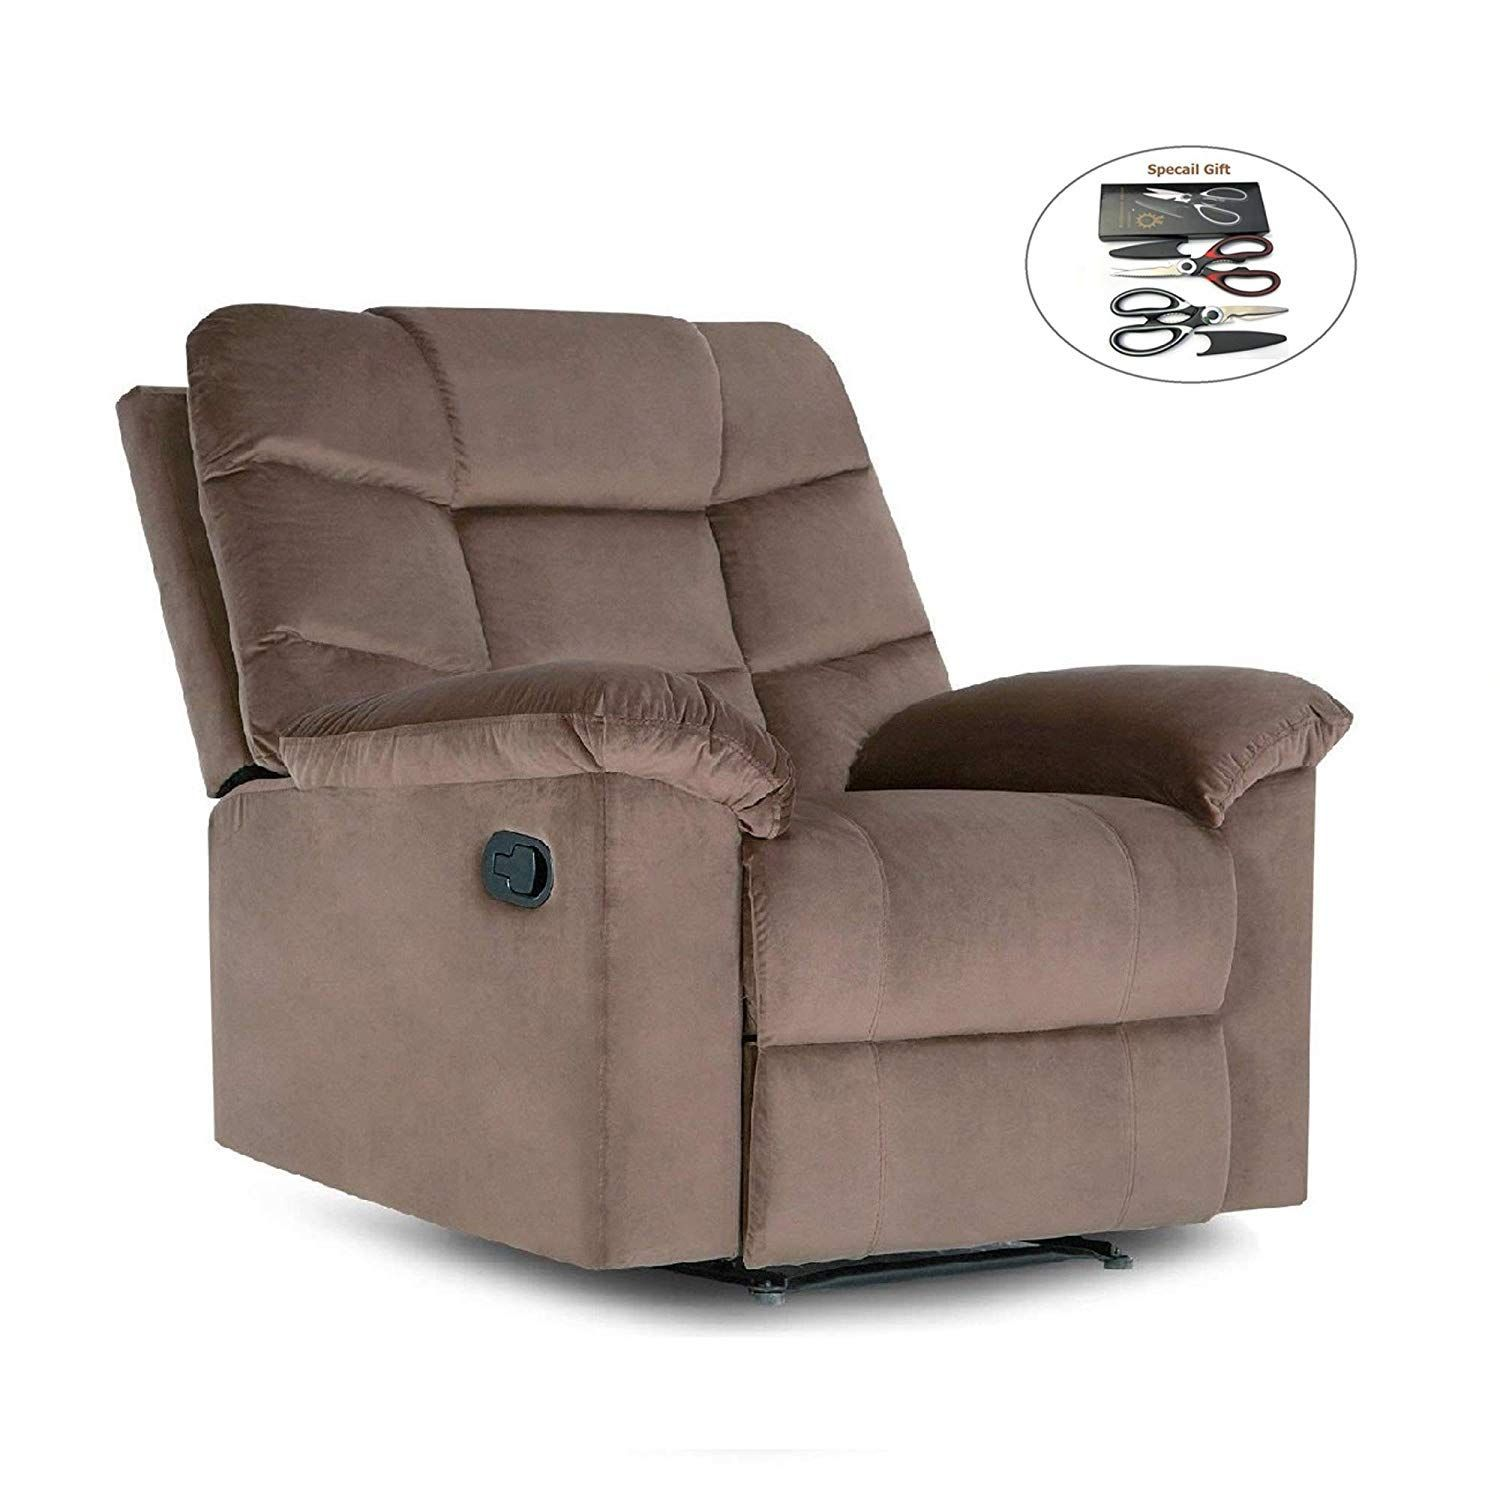 10 Top Overstuffed Living Room Chairs